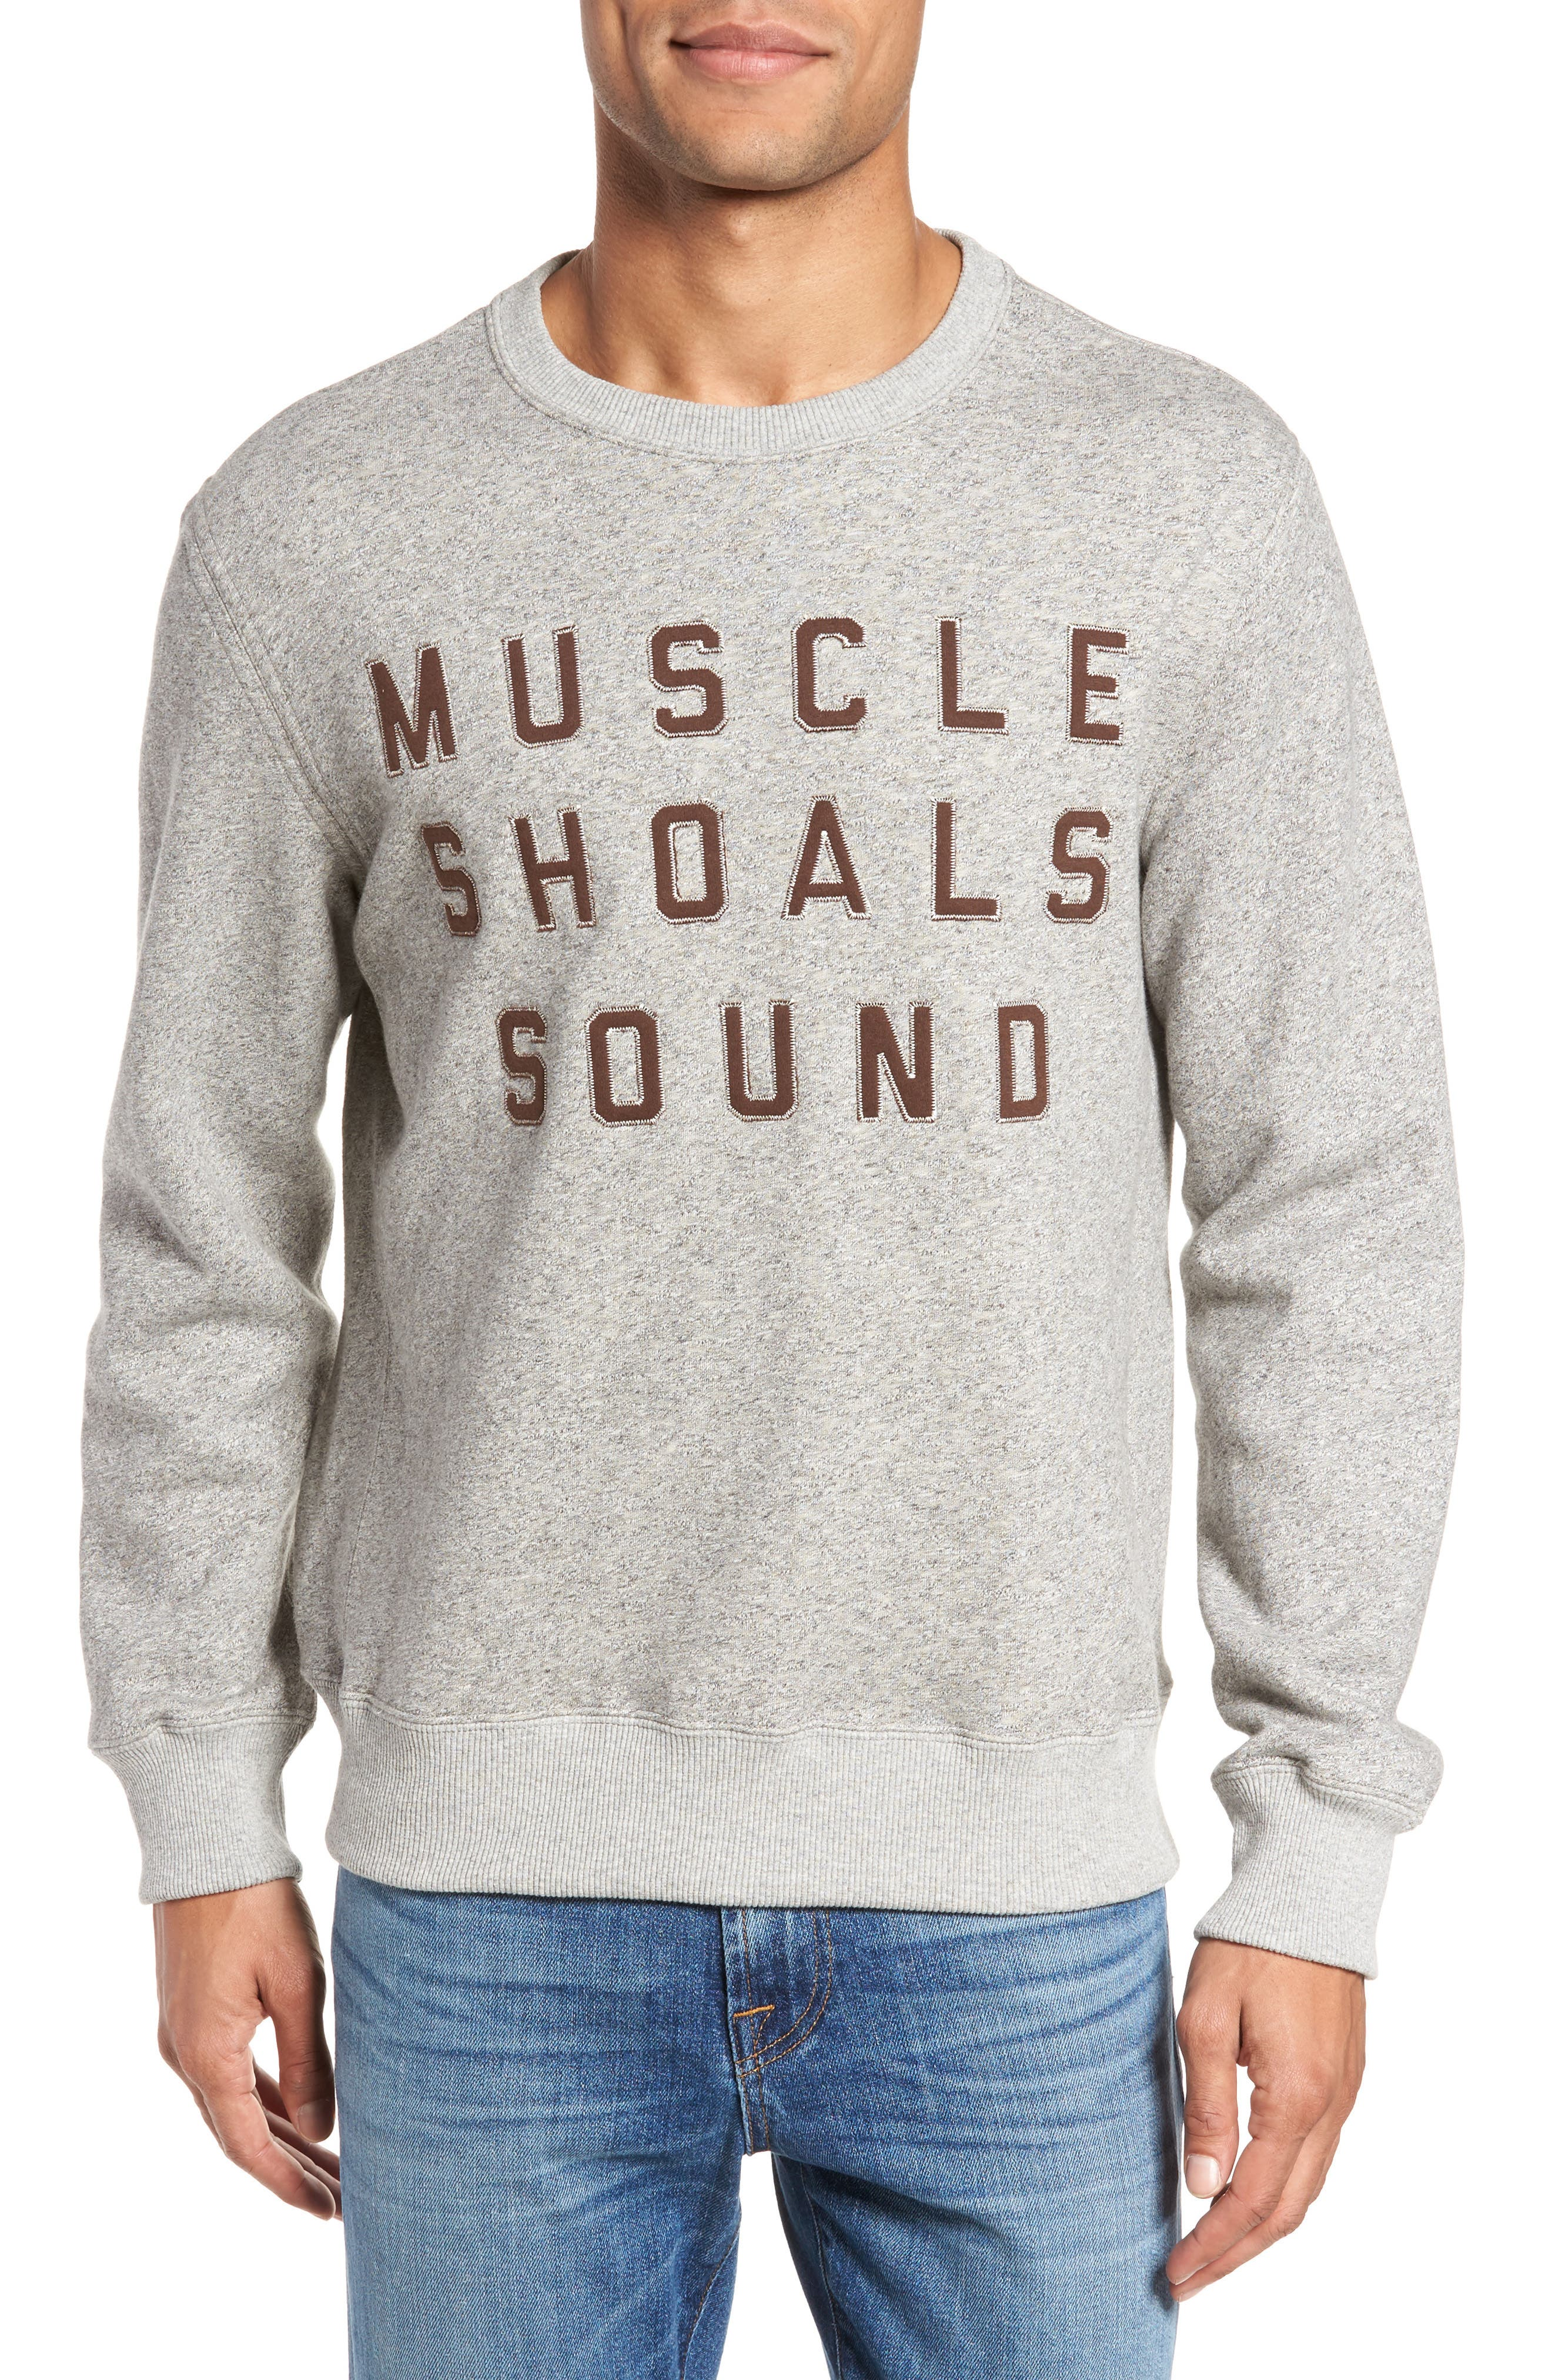 Muscle Shoals Sound Pullover,                         Main,                         color, Light Heather Grey